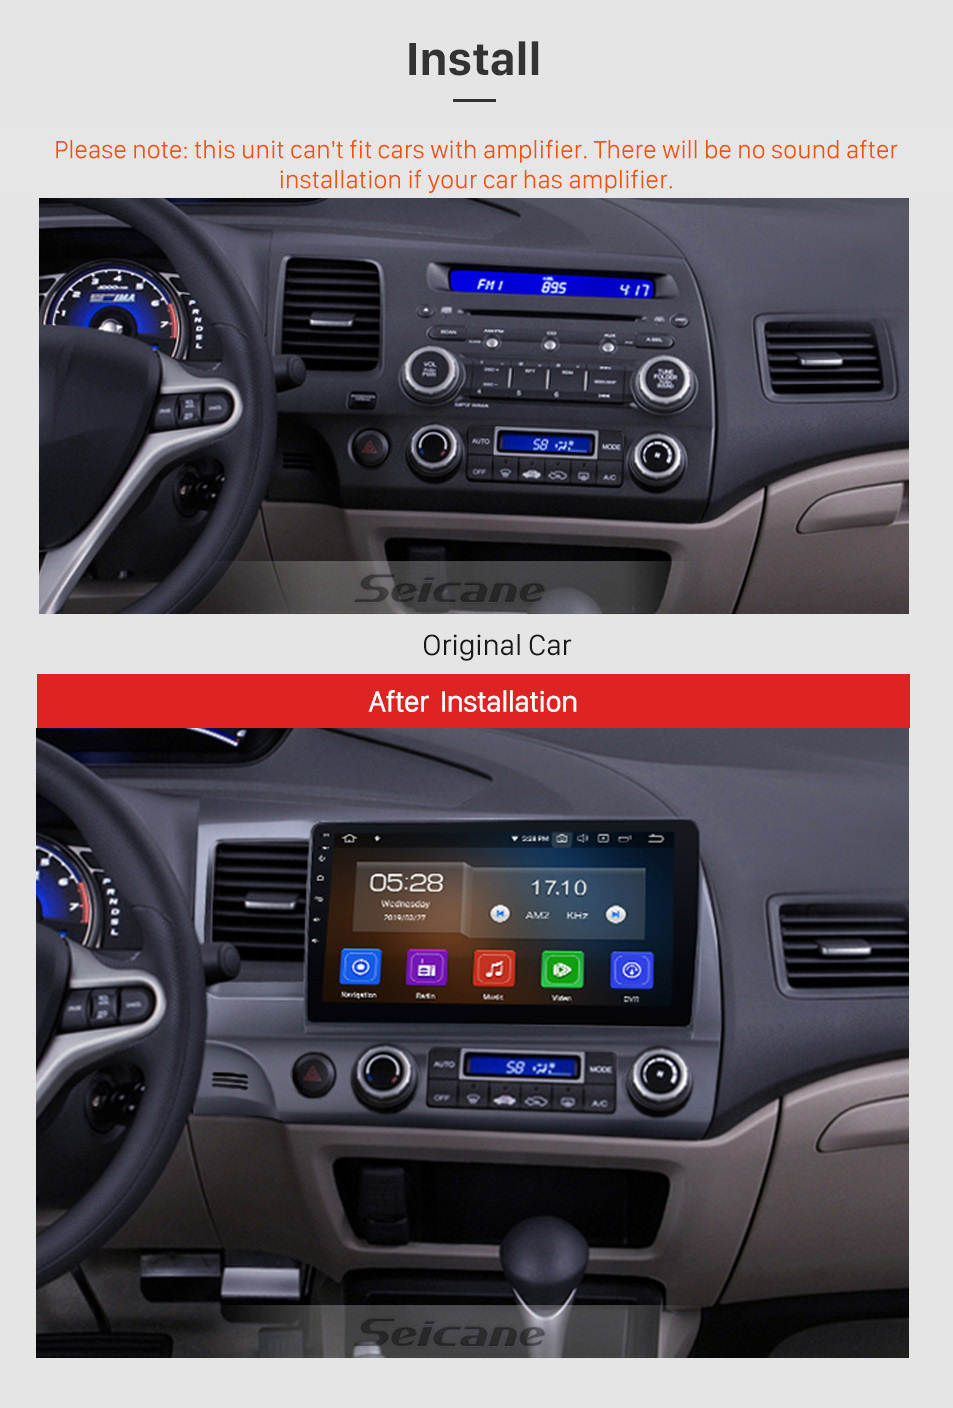 Seicane Android 9.0 Autoradio Navigation Aftermarket Stereo for 2006-2011 Honda Civic with 3G WiFi DVD Radio RDS Bluetooth Mirror Link OBD2 Steering Wheel Control AUX